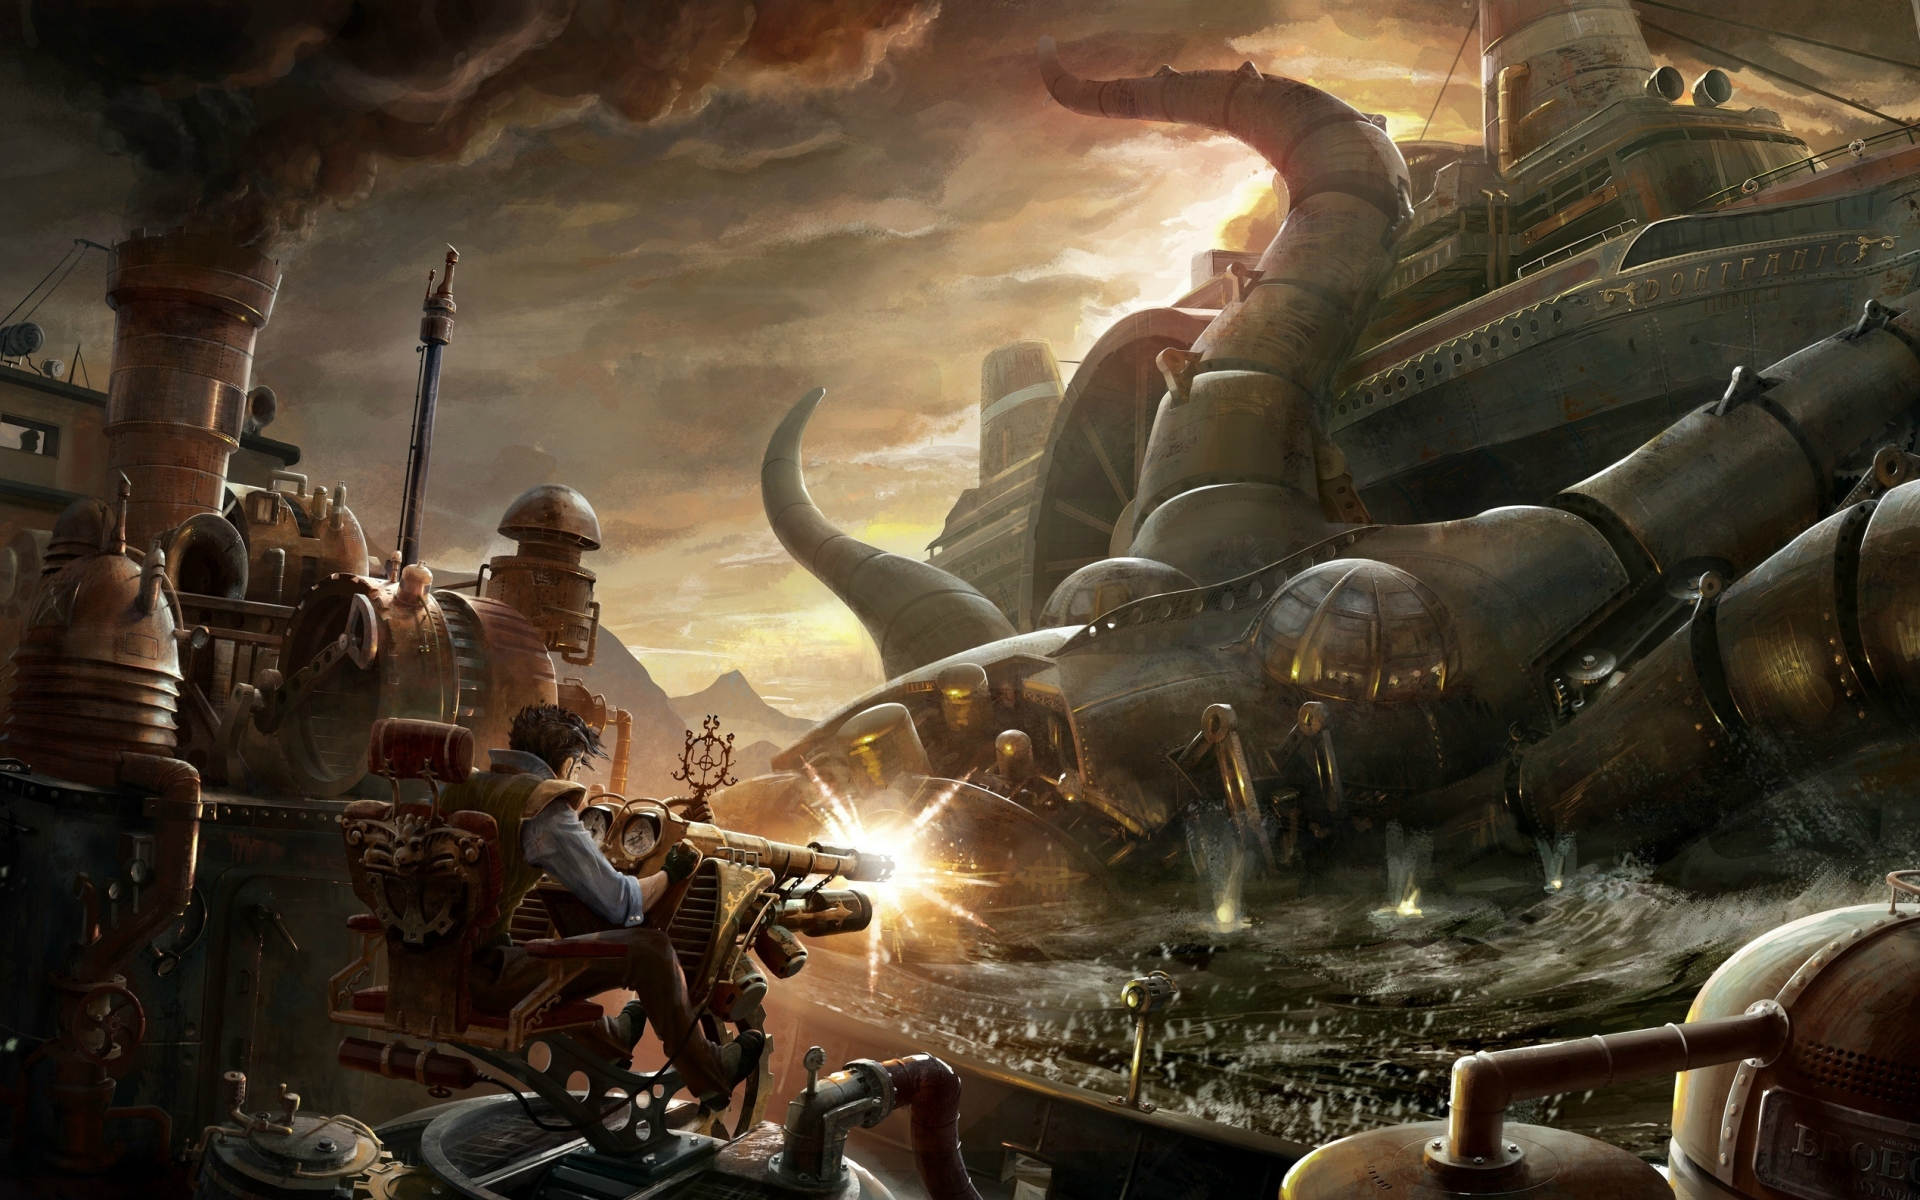 Free Sci Fi Fantasy Desktop Wallpaper: Steampunk Wallpapers, Pictures, Images